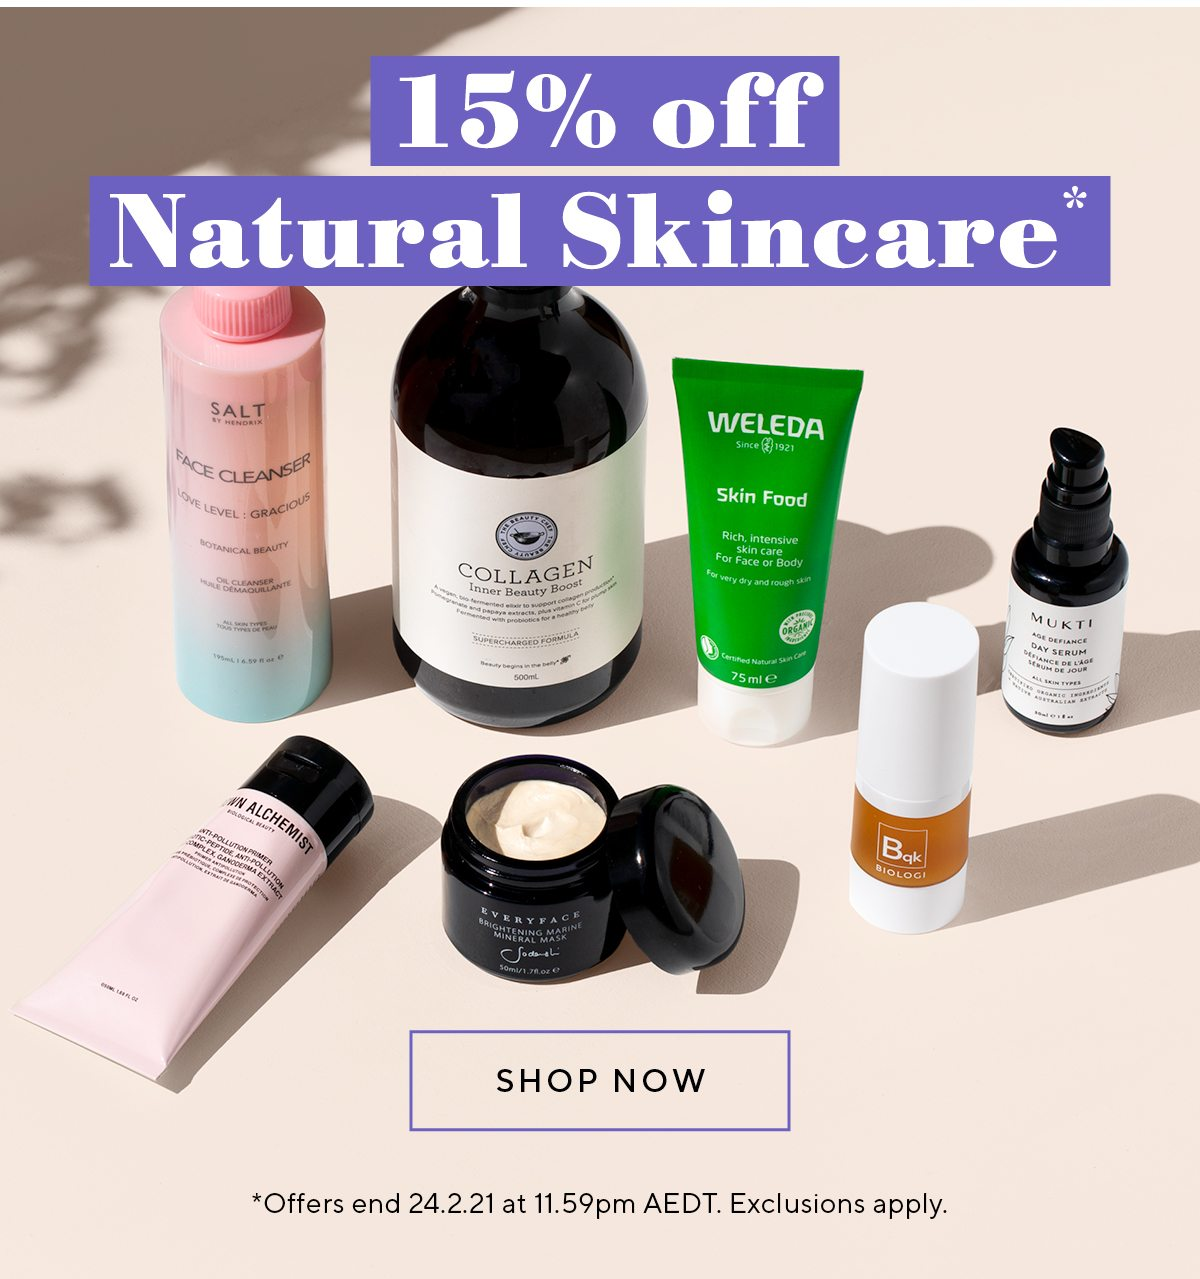 15% off natural skincare*